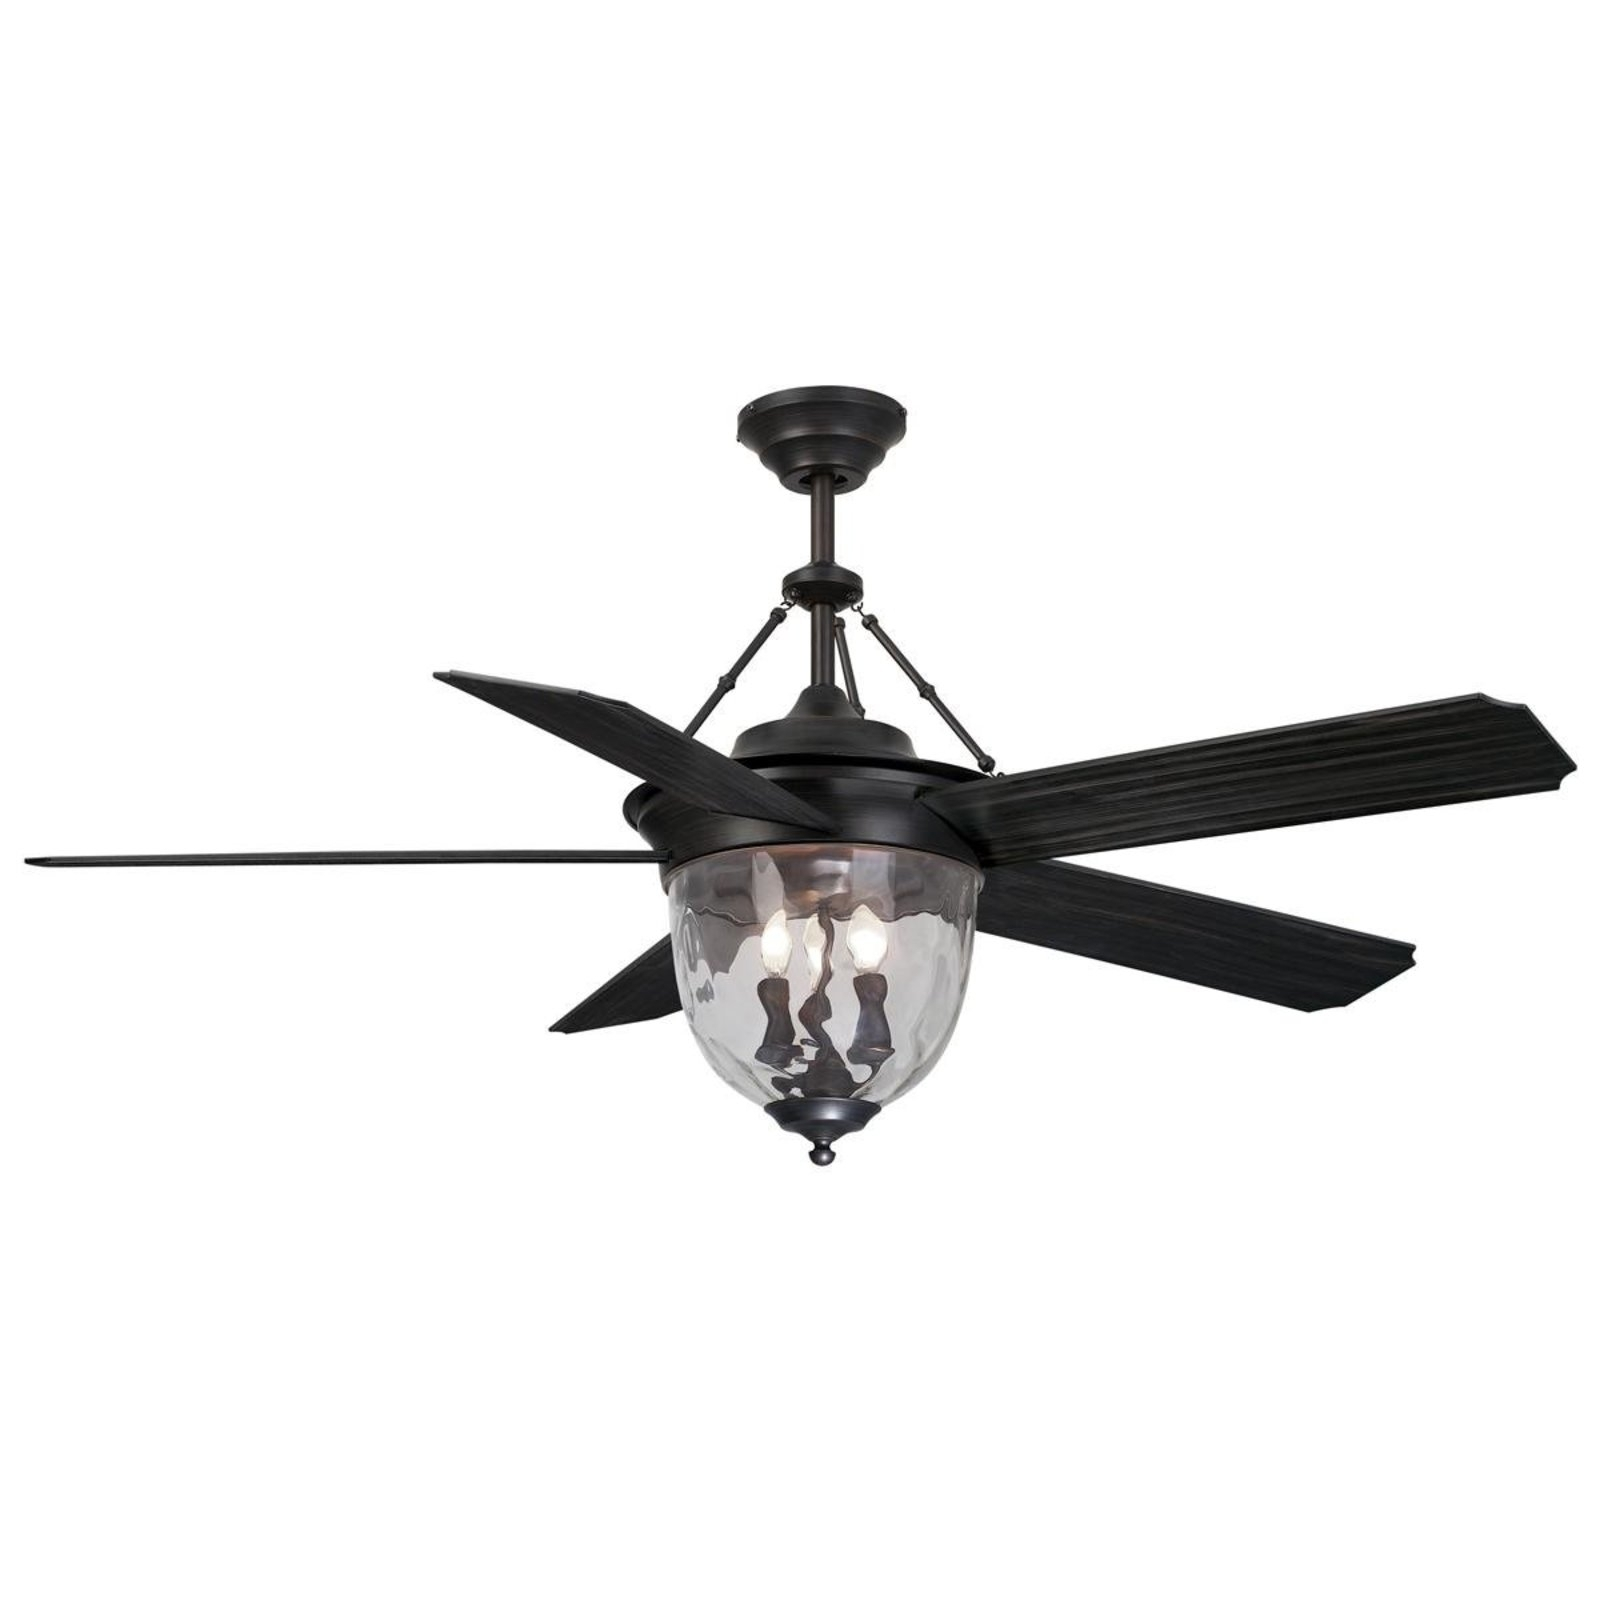 Outdoor Ceiling Fans With Lights Lighting Light Interiors – Golfocd Pertaining To Outdoor Ceiling Fans With Wet Rated Lights (#14 of 15)